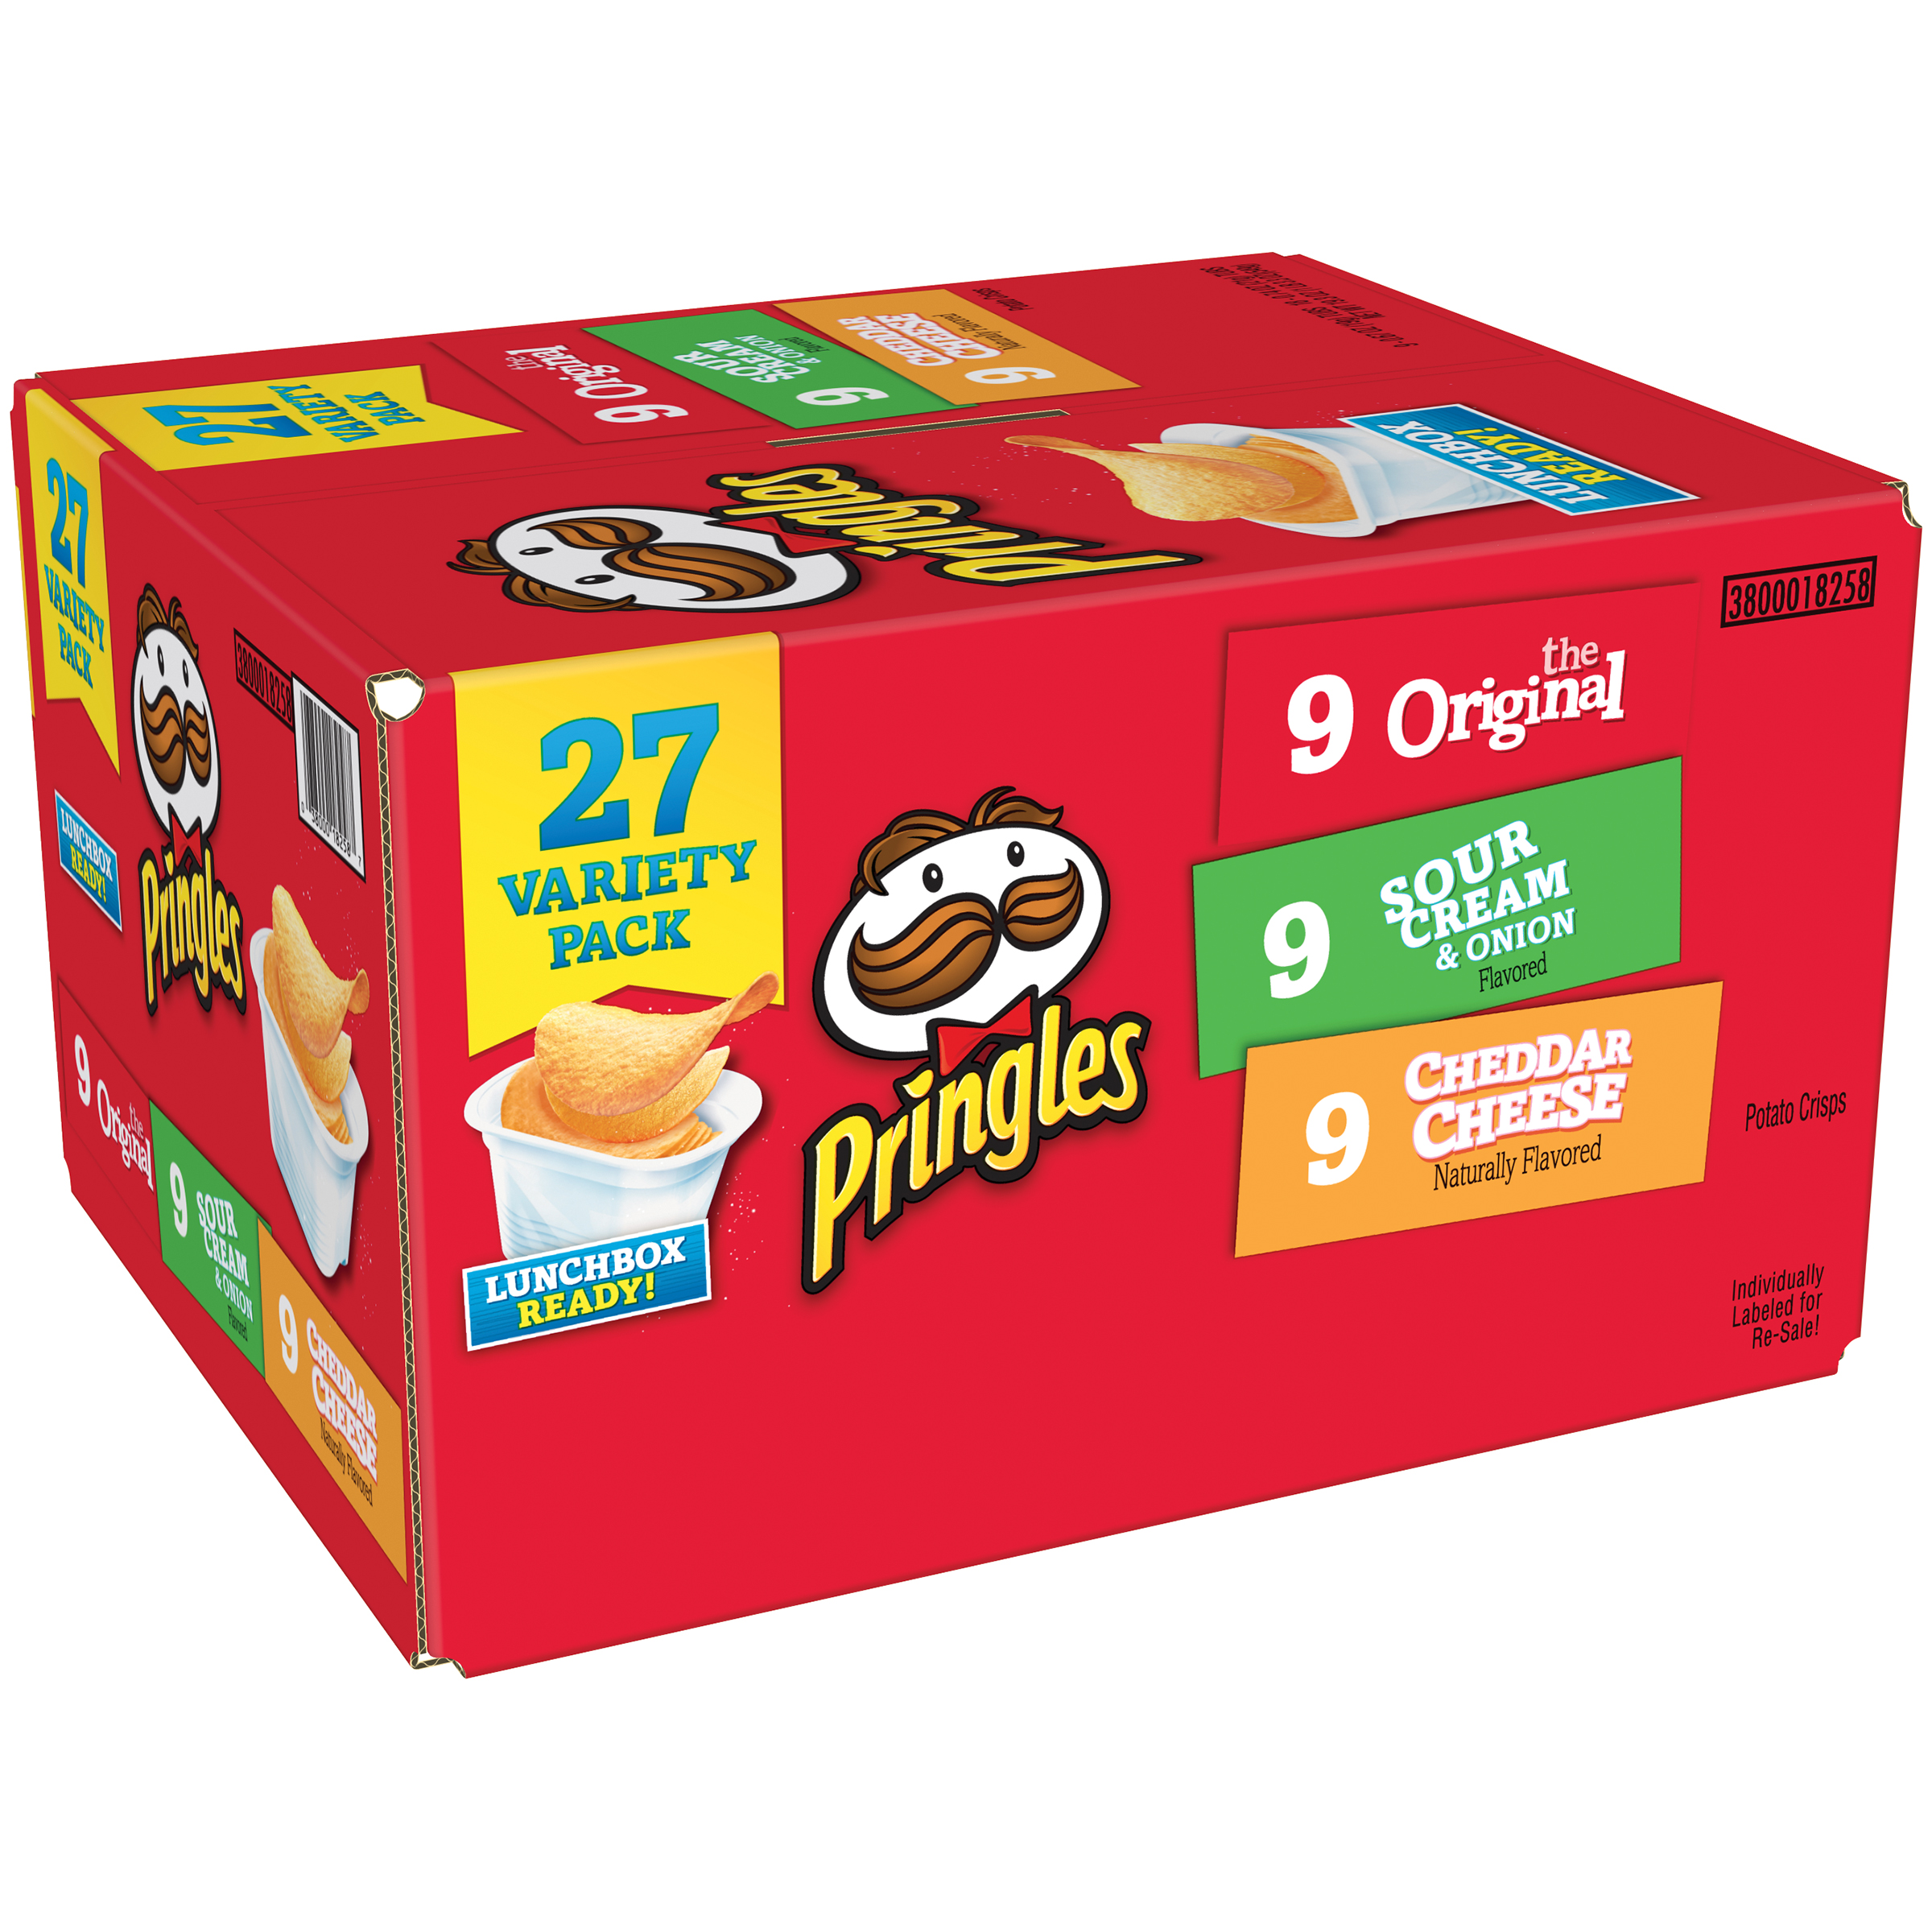 (Pack of 2) Pringles Original, Sour Cream & Onion and Cheddar Cheese Potato Crisps Chips Variety Pack 27 ct